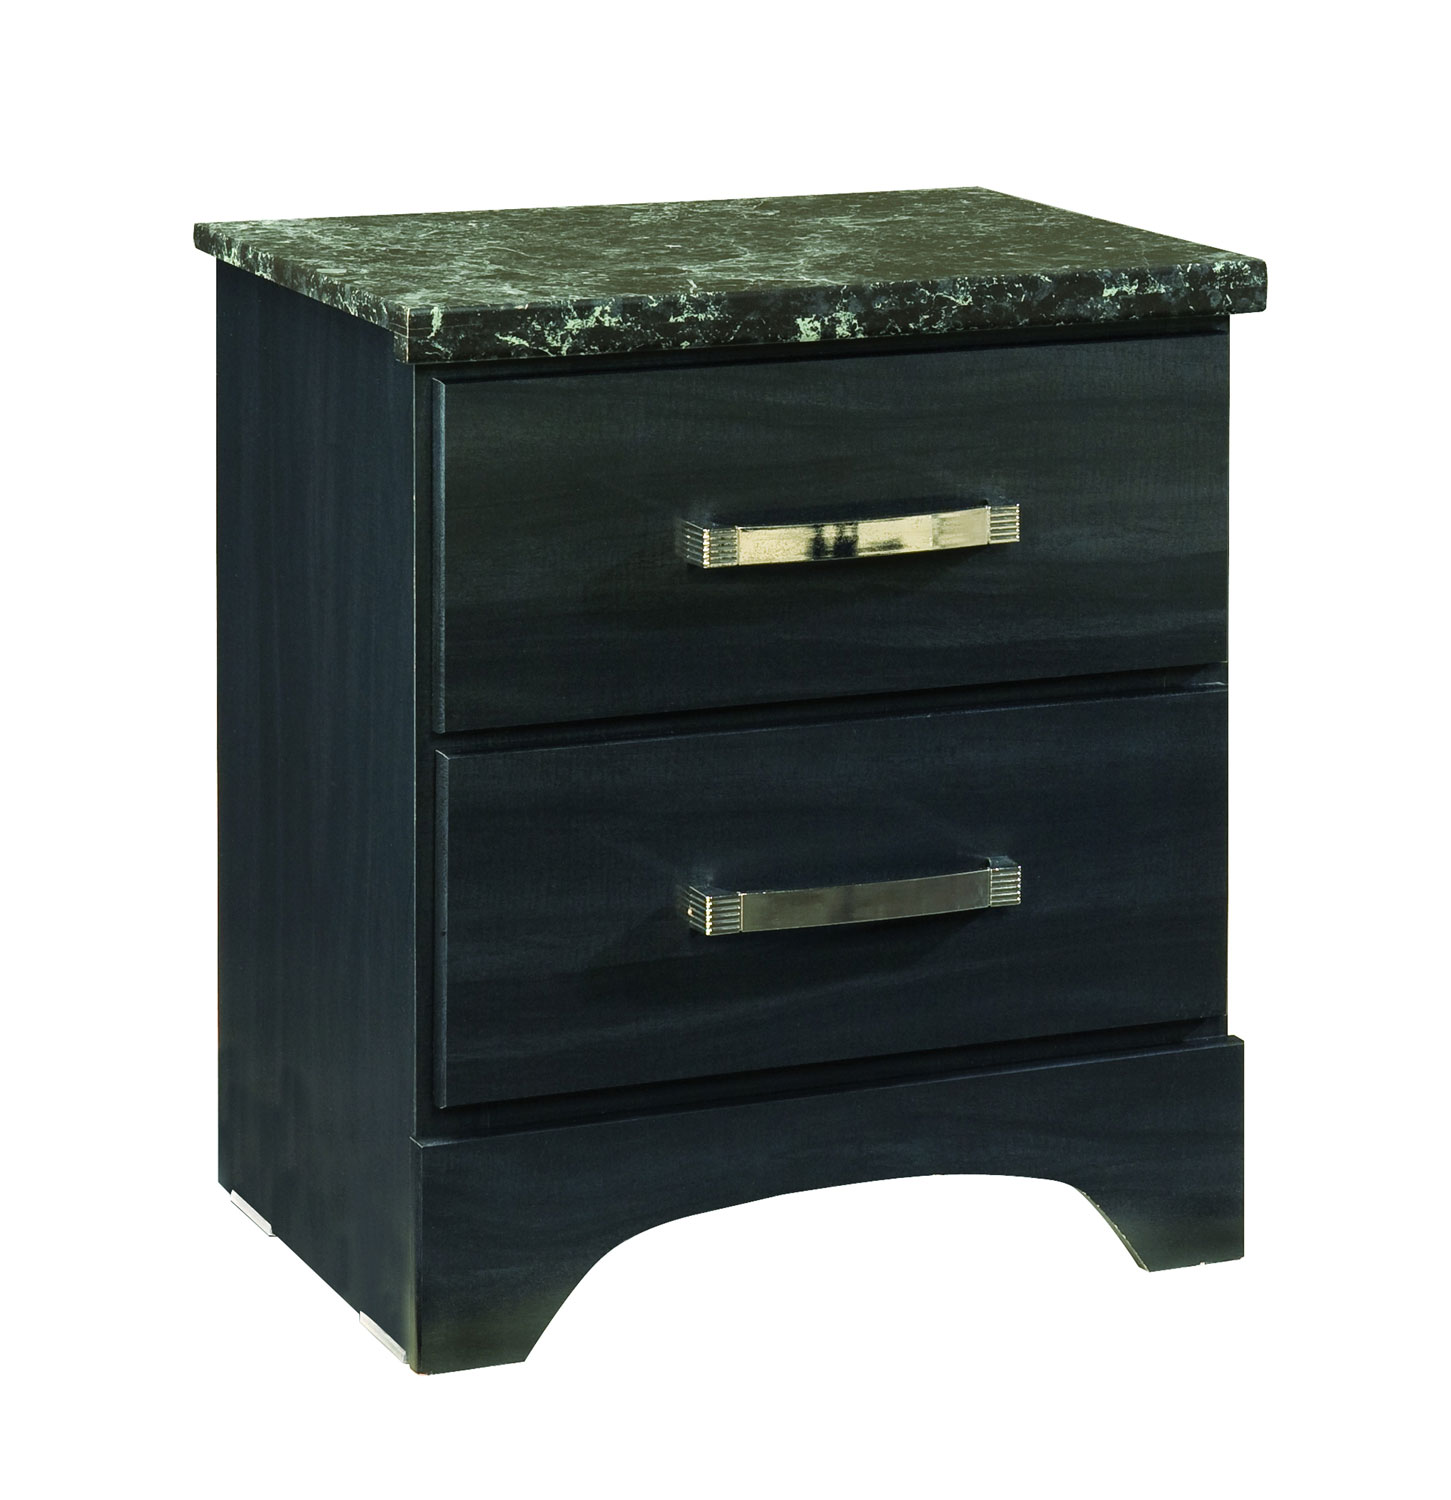 Global Furniture USA Olivia Nightstand - Engineered Wood/Oak Wood Graining Laminate - Black